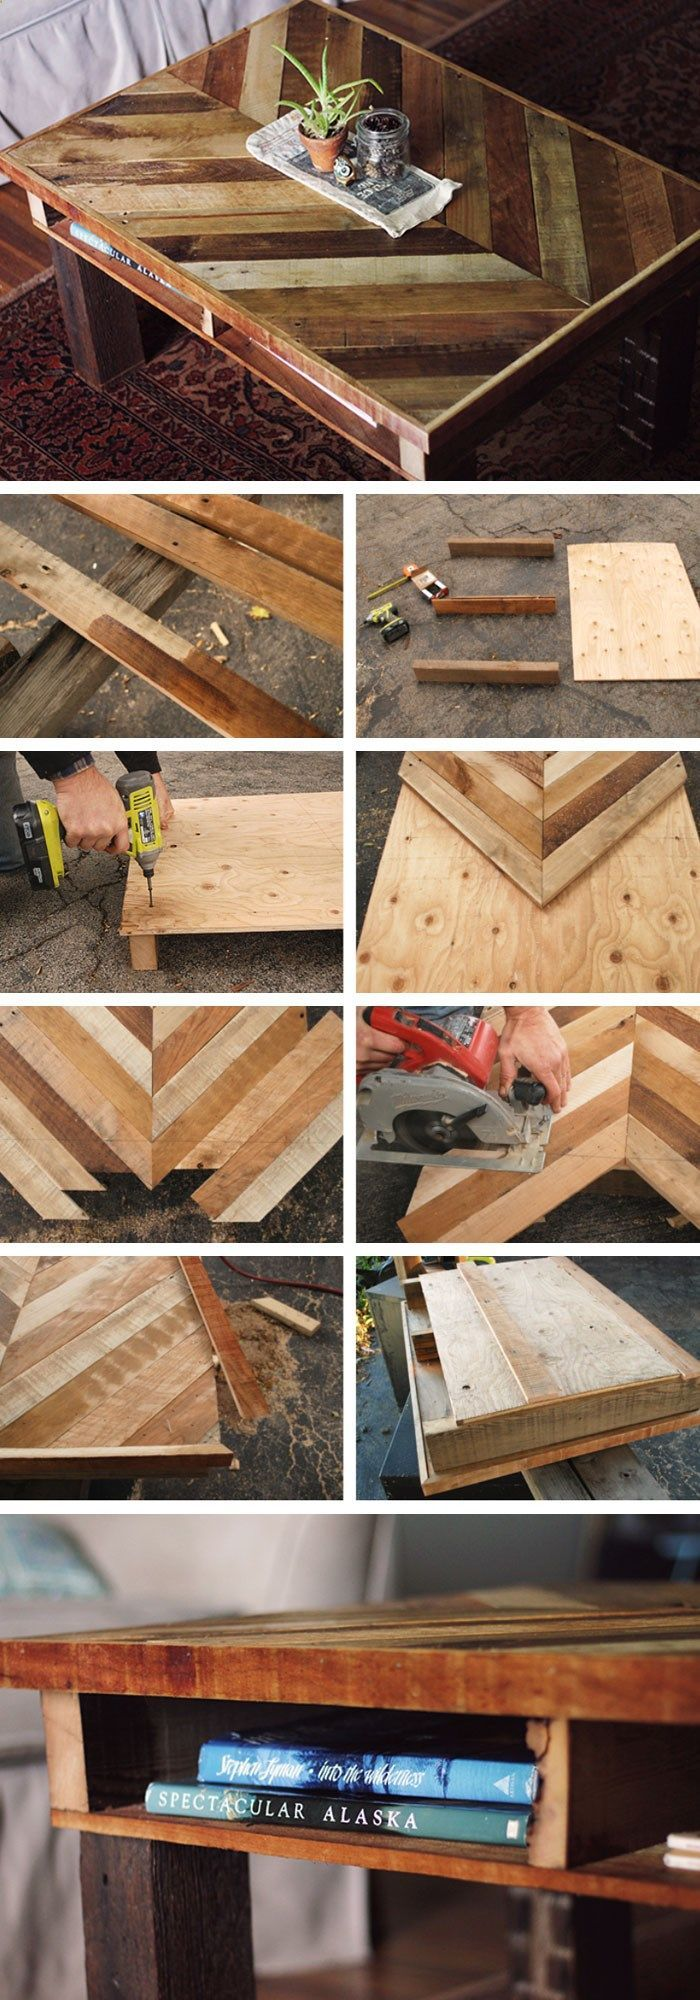 Wood pallet coffee table do you assume wood pallet coffee table - Diy Pallet Coffee Table Diy Home Decor Ideas On A Budget Diy Home Decorating